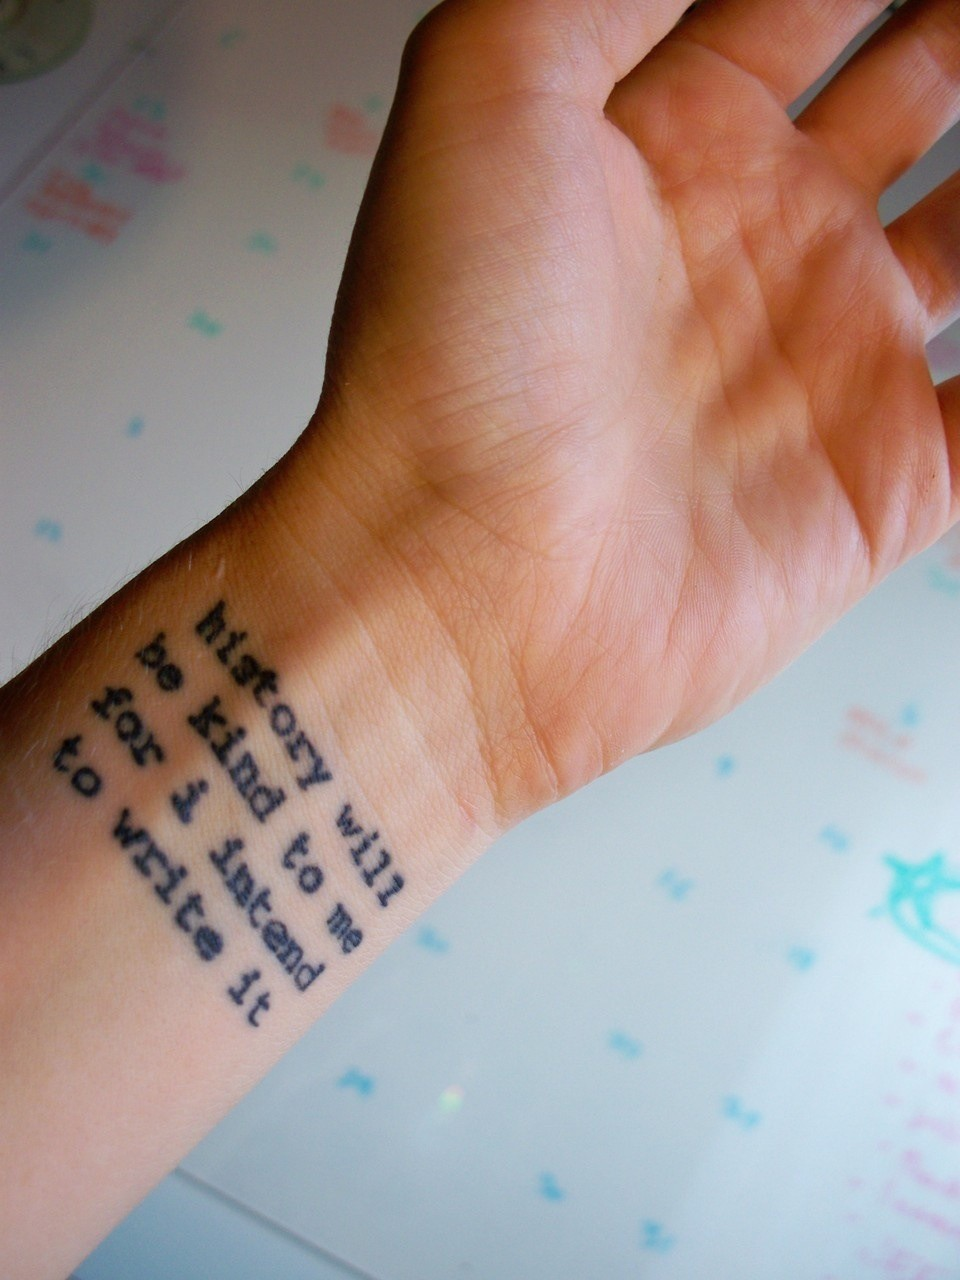 Inspirational Tattoos Designs Ideas And Meaning  For You